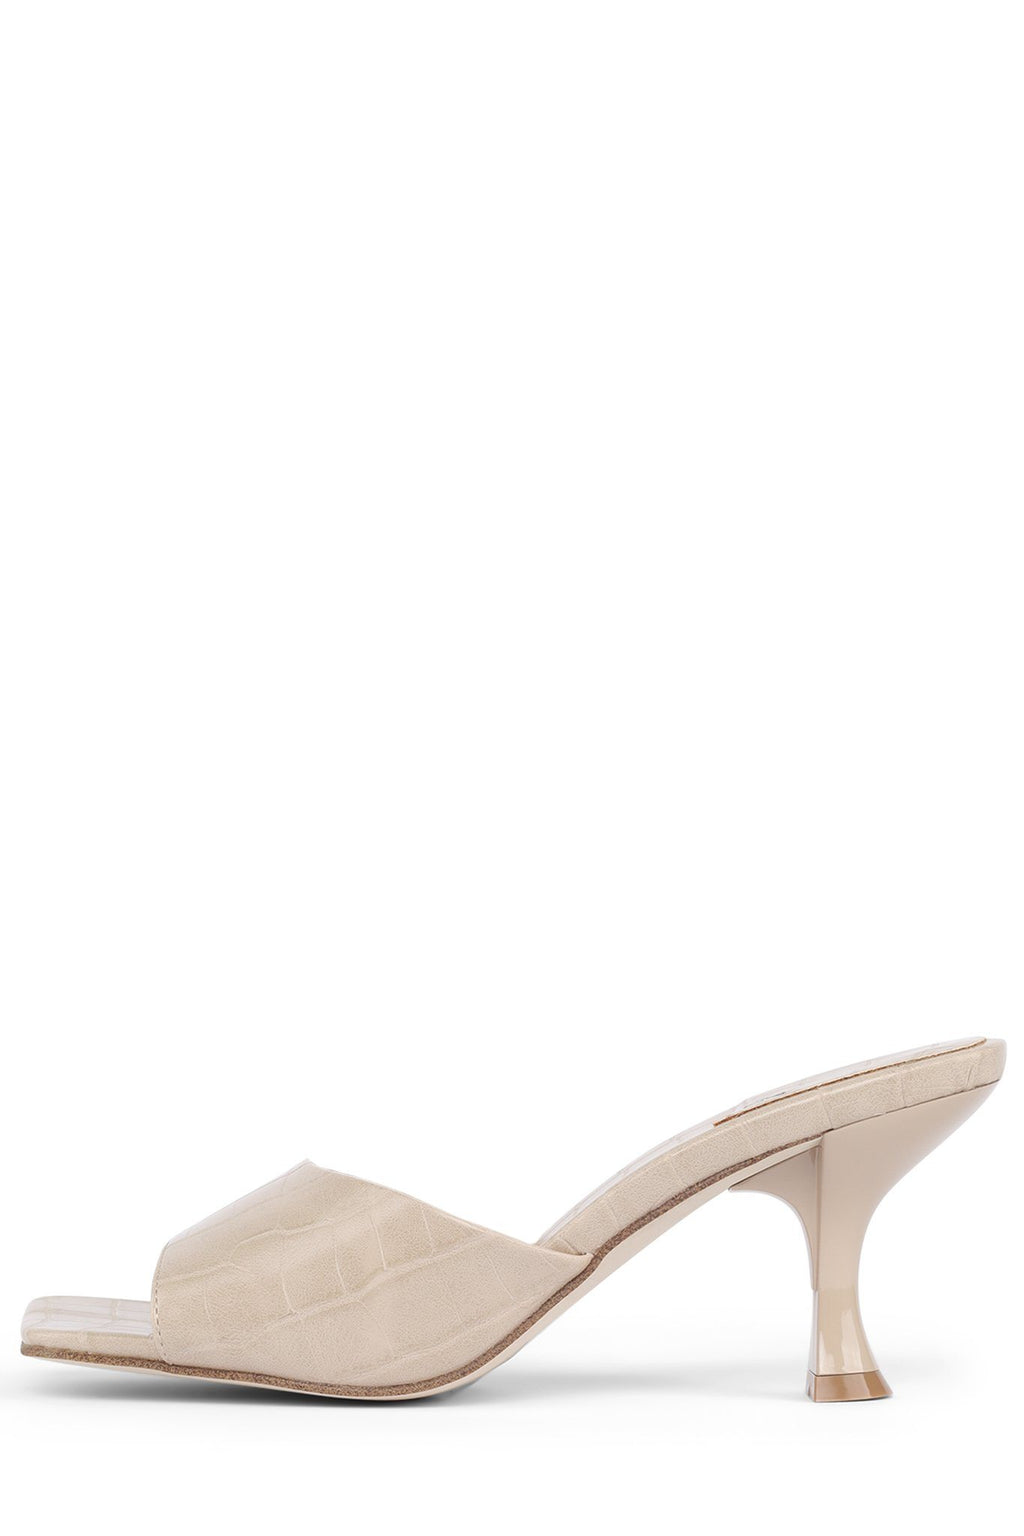 MR-BIG Heeled Sandal Jeffrey Campbell Nude Croco 6